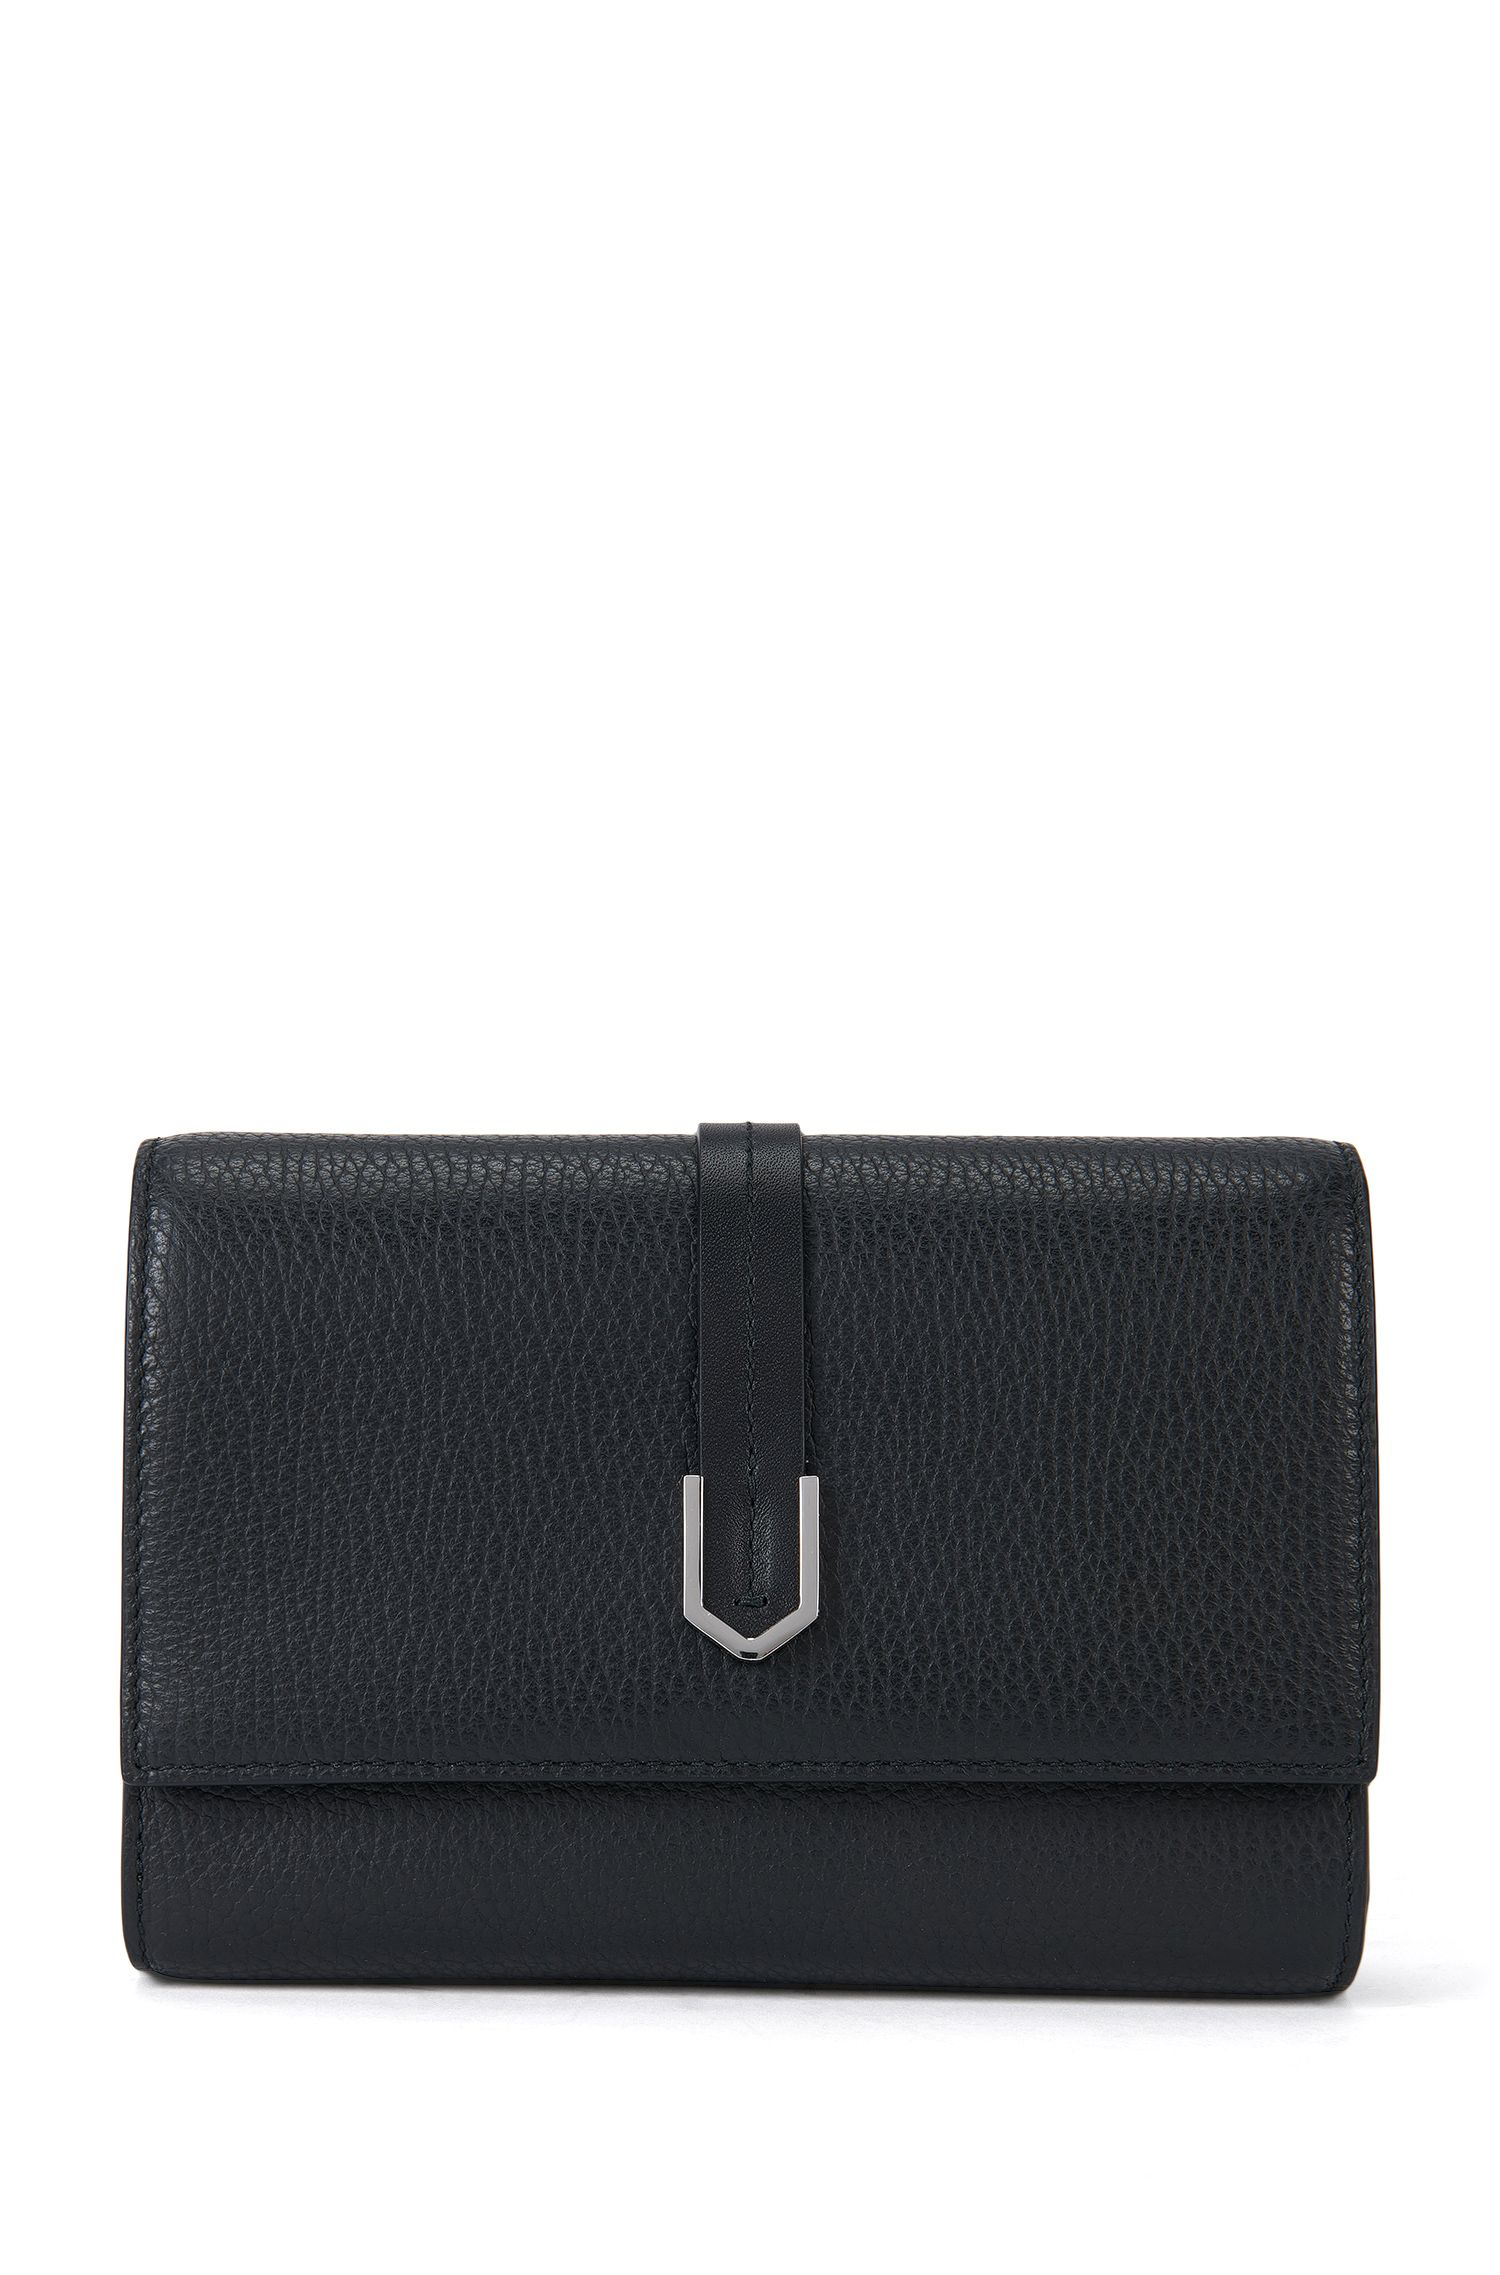 Compact clutch bag in textured Italian leather